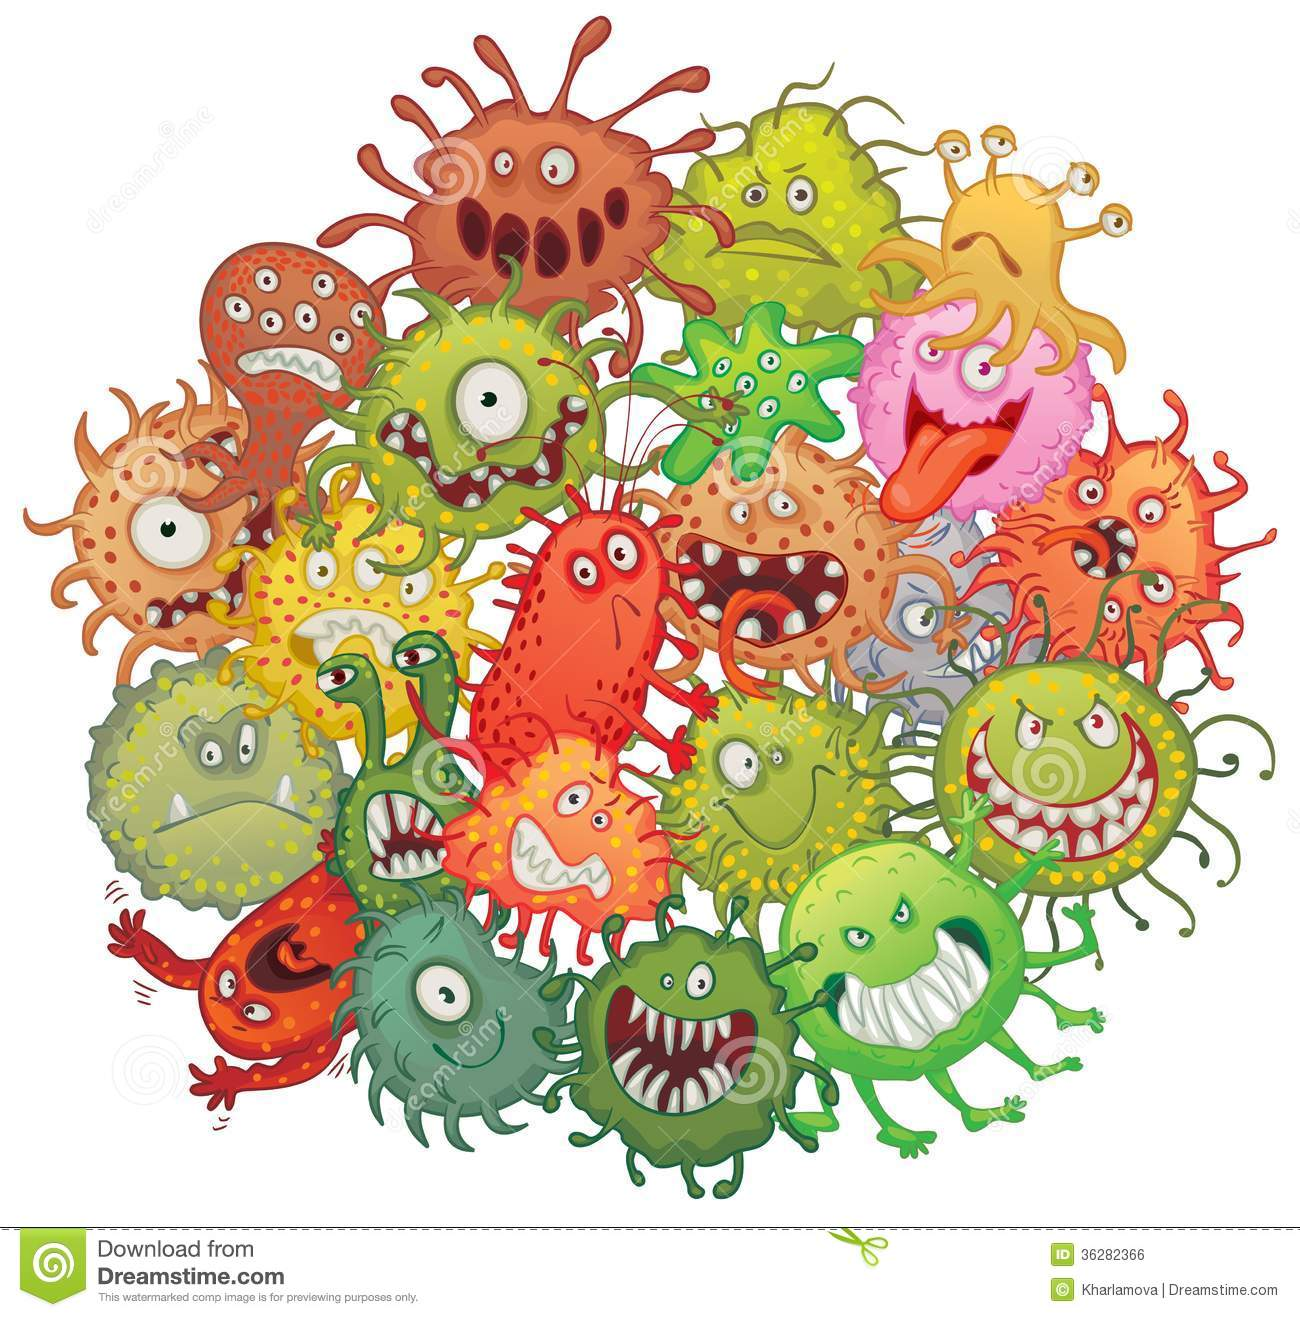 Bacteria clipart #12, Download drawings